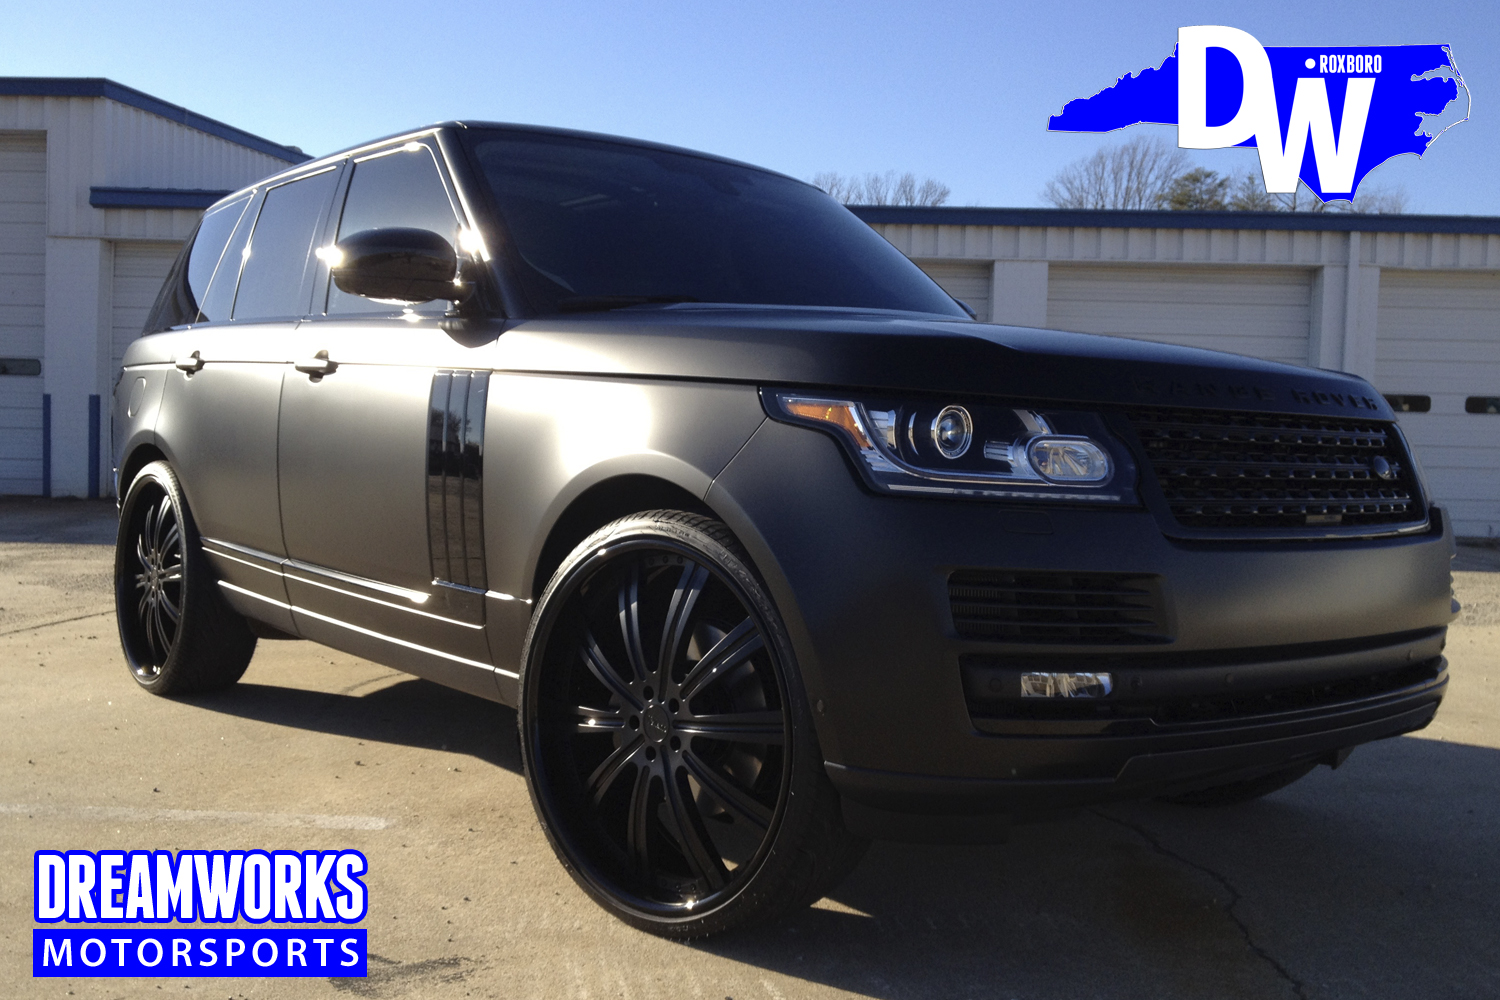 Wesley-Mathews-Range-Rover-Matte-Wrapped-By-Dreamworks-Motorsports-6.jpg